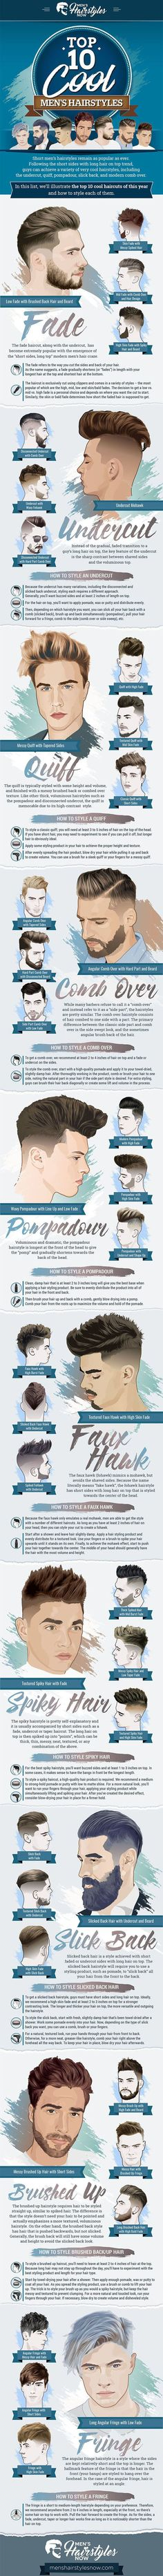 Infographic: Trendiest Hairstyles For Men In 2017 - DesignTAXI.com